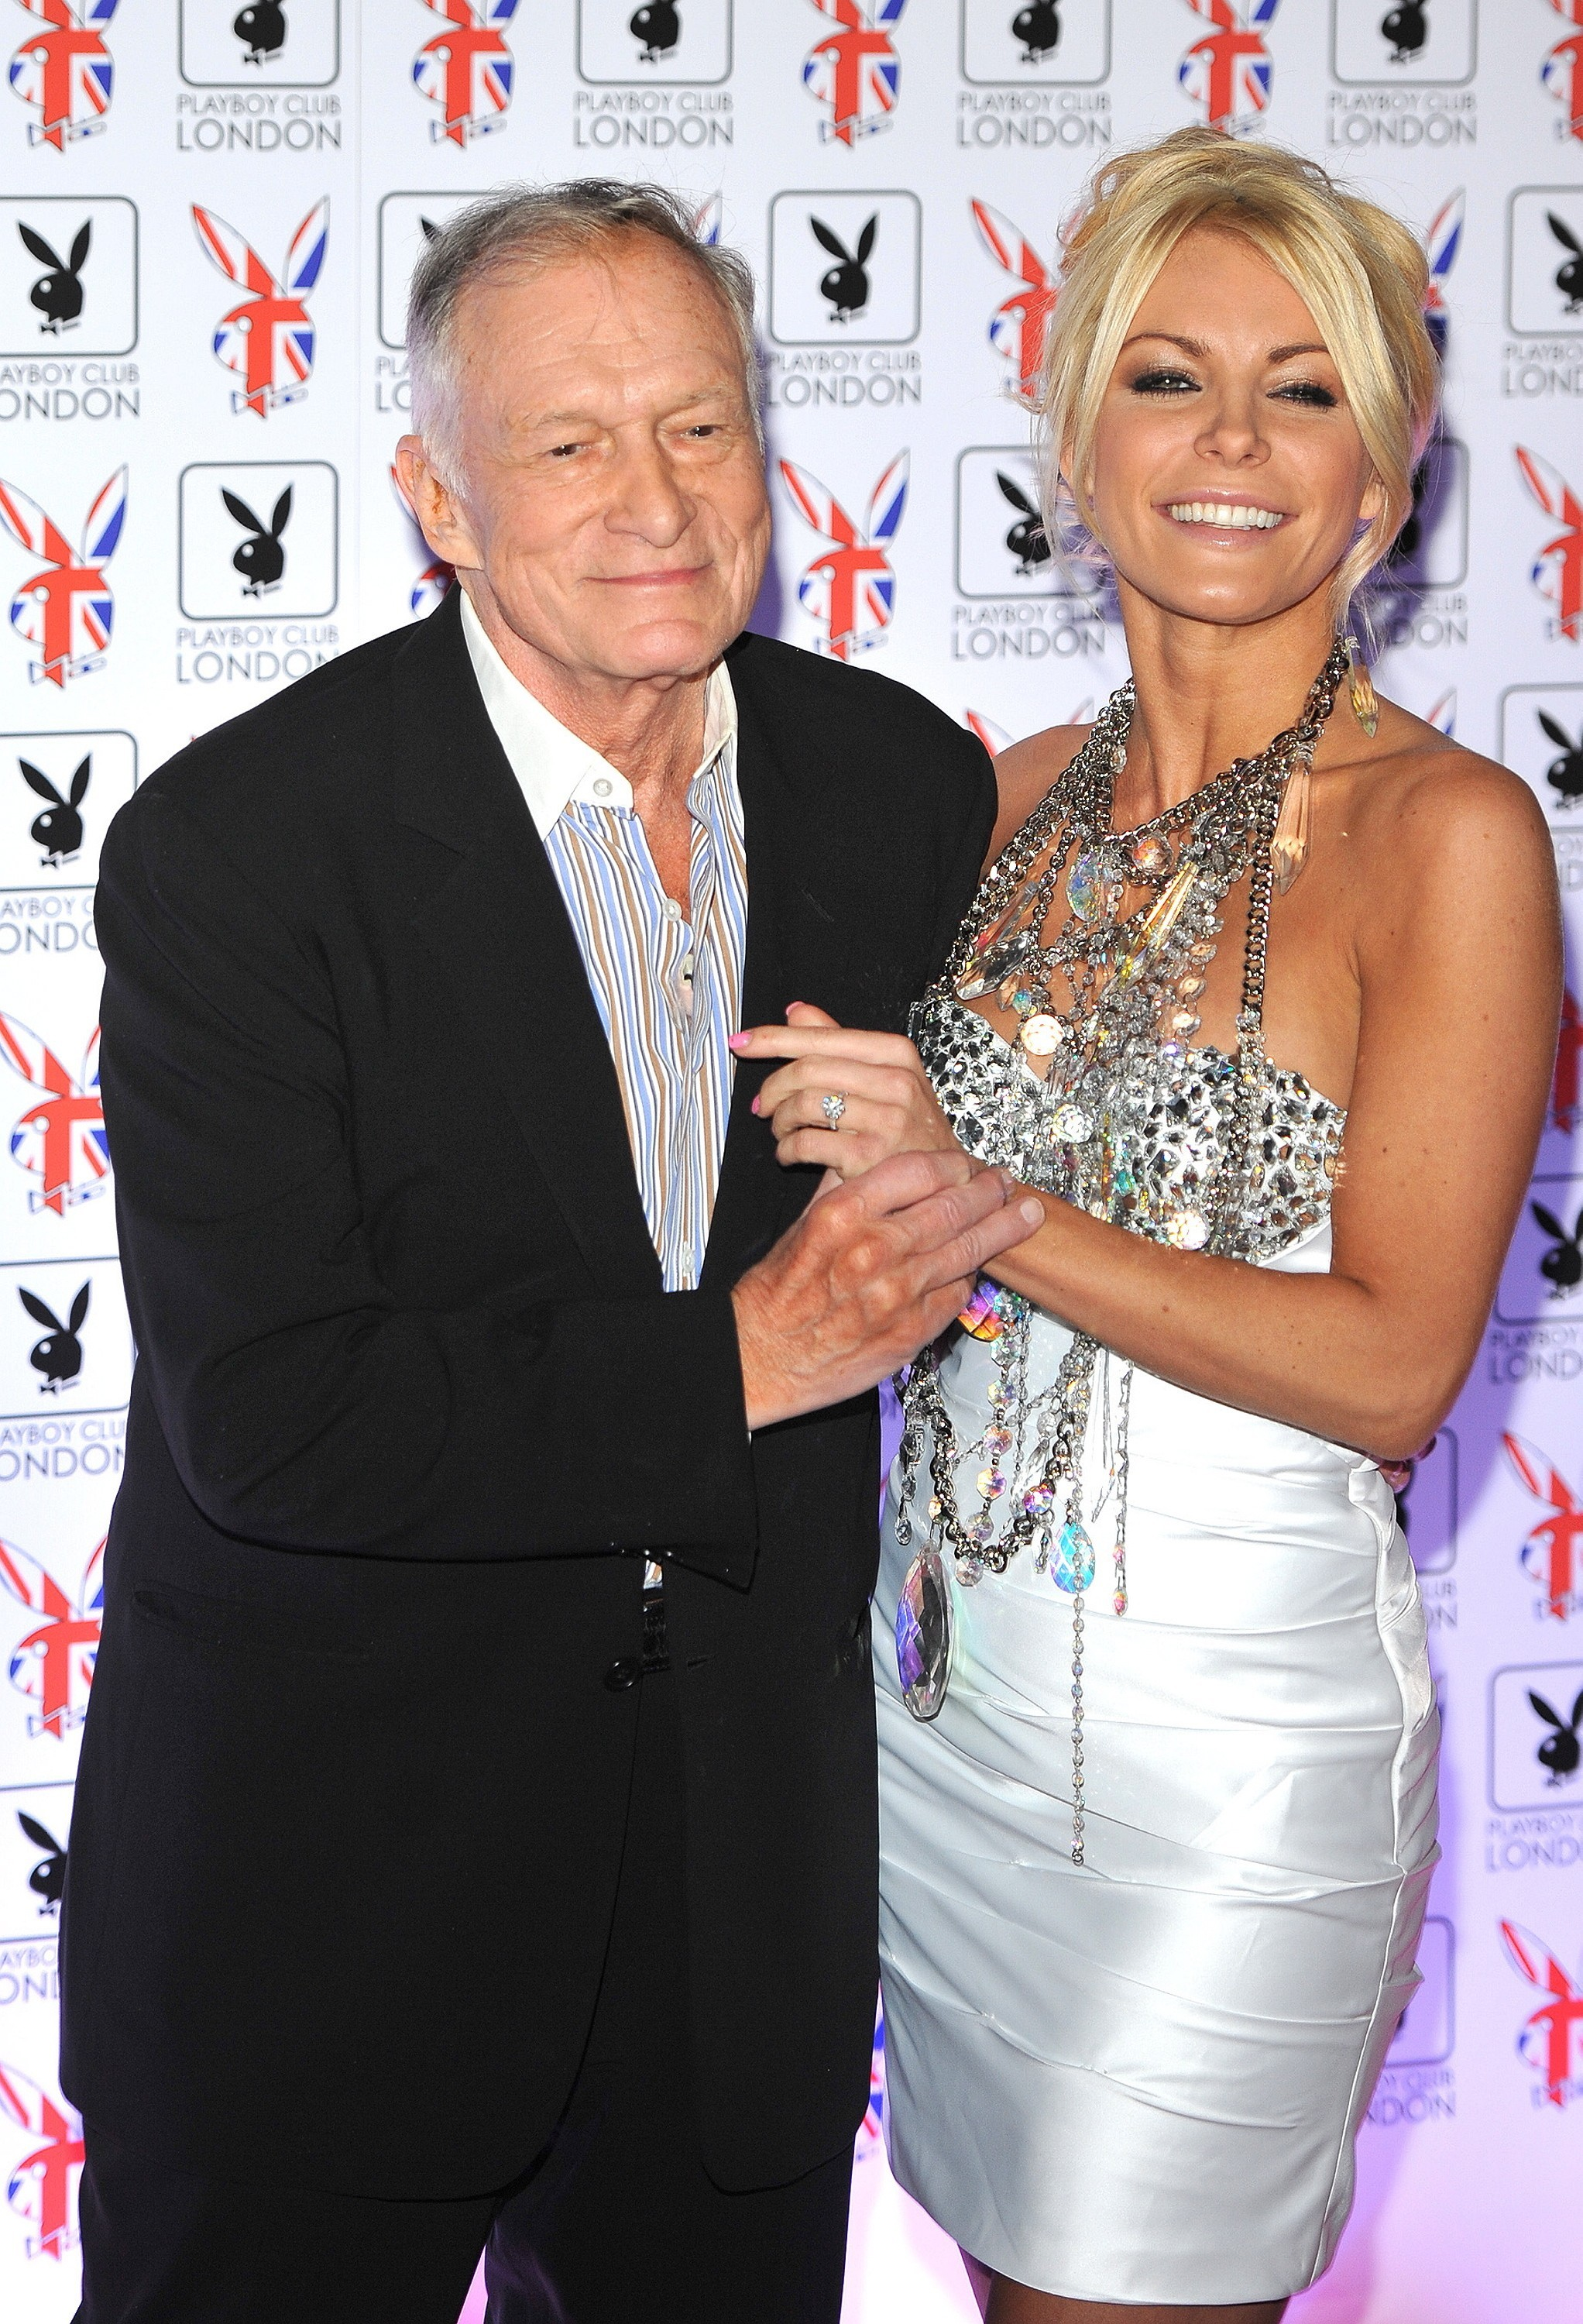 Hugh Hefner Chrystal Harris silver white dress